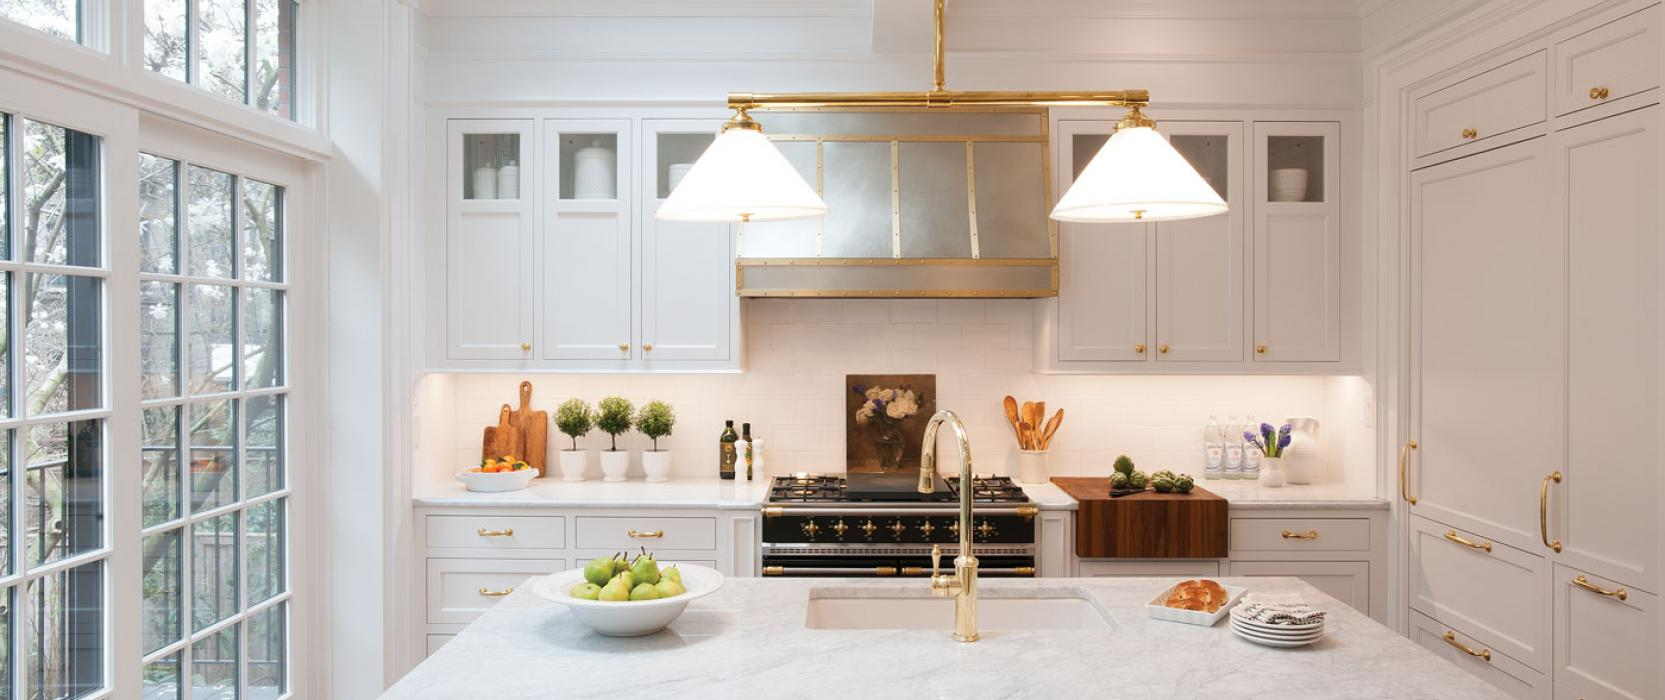 High-end inset custom cabinetry by Crown Point Cabinetry